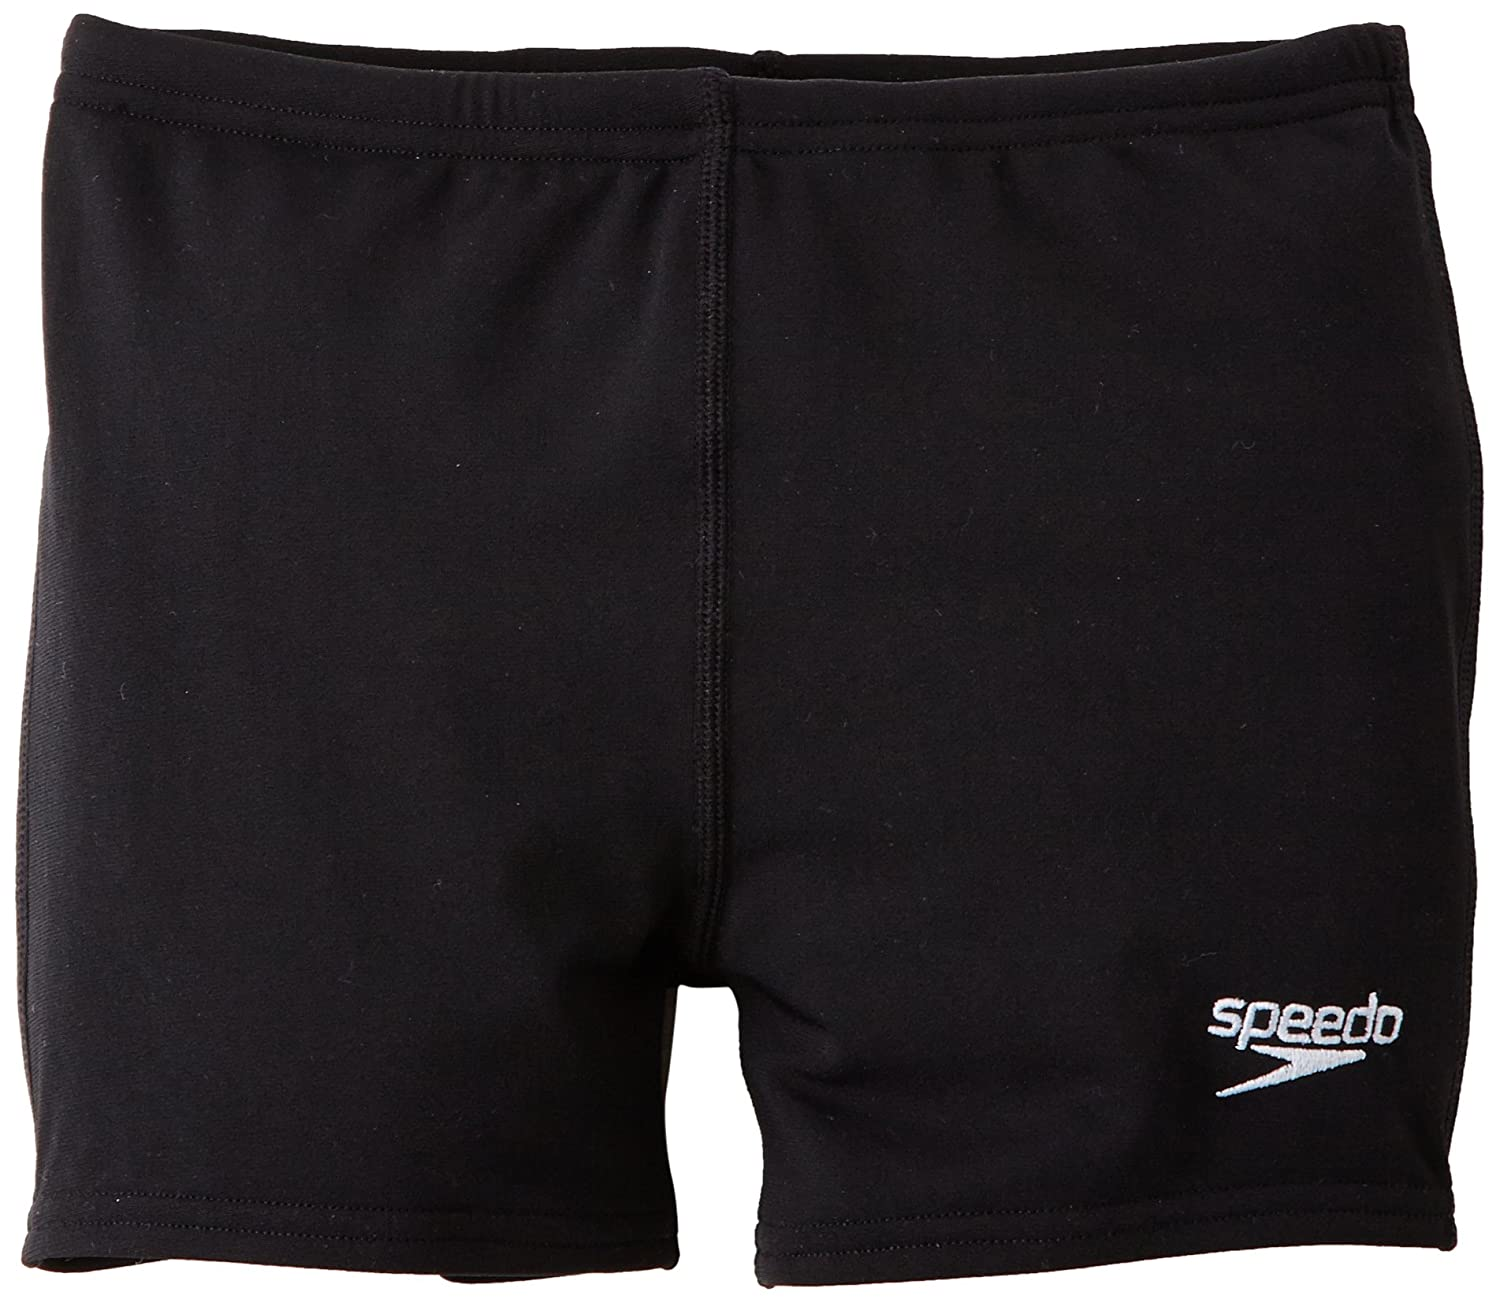 Speedo Boy's Endurance + Short 28 Black 8-007300001